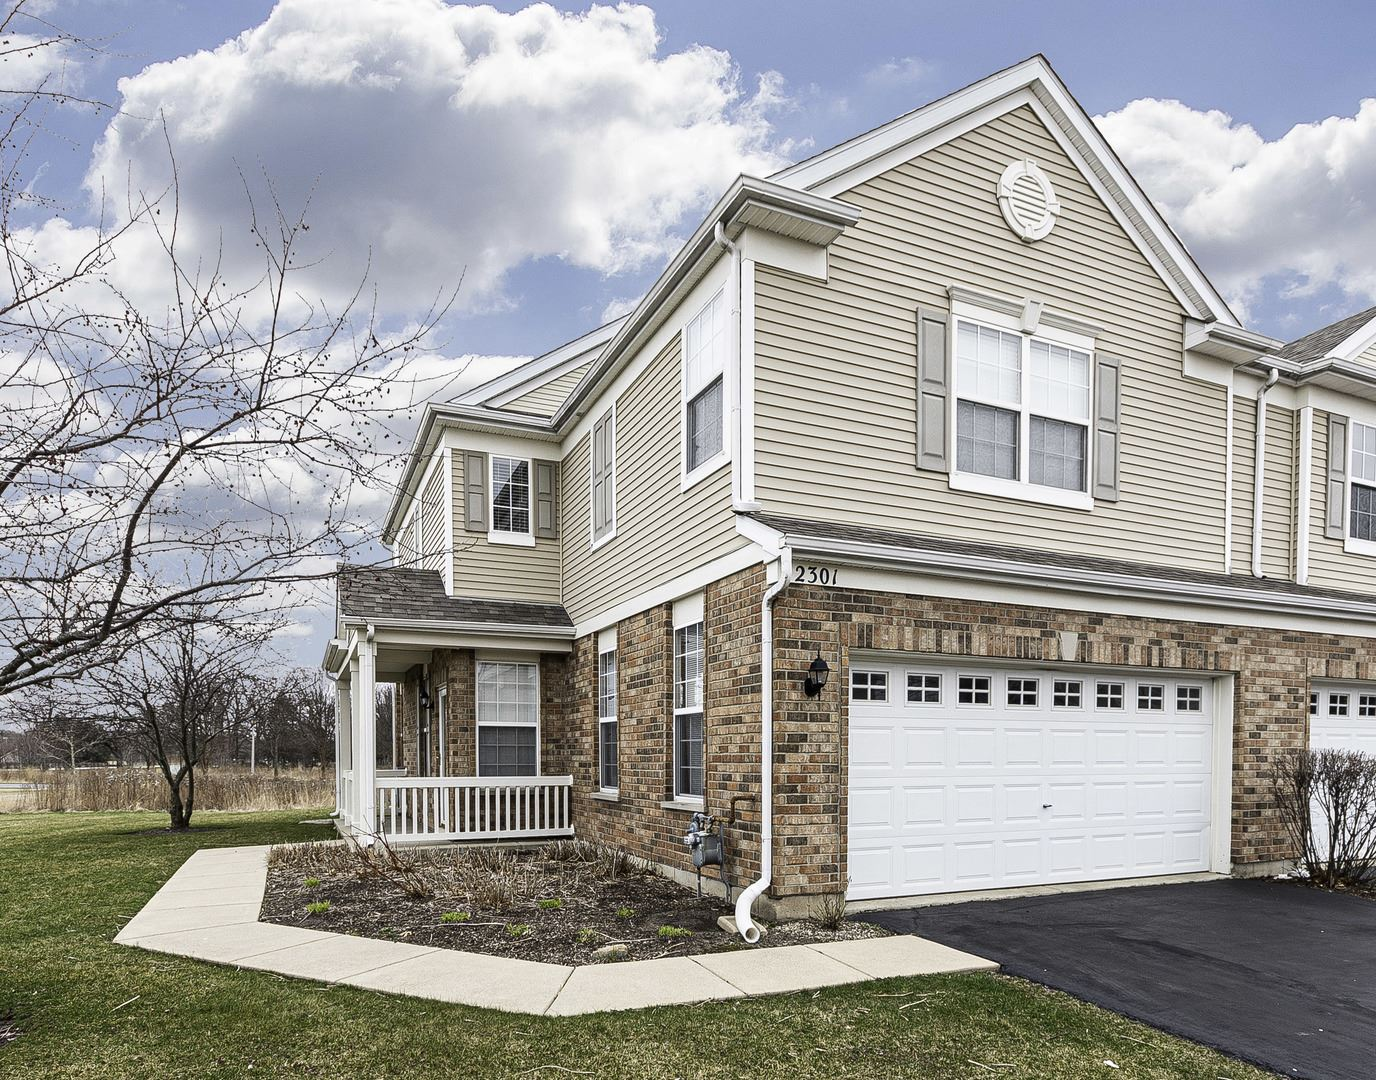 2301 Evergreen Circle, McHenry, IL 60050 - #: 10682265